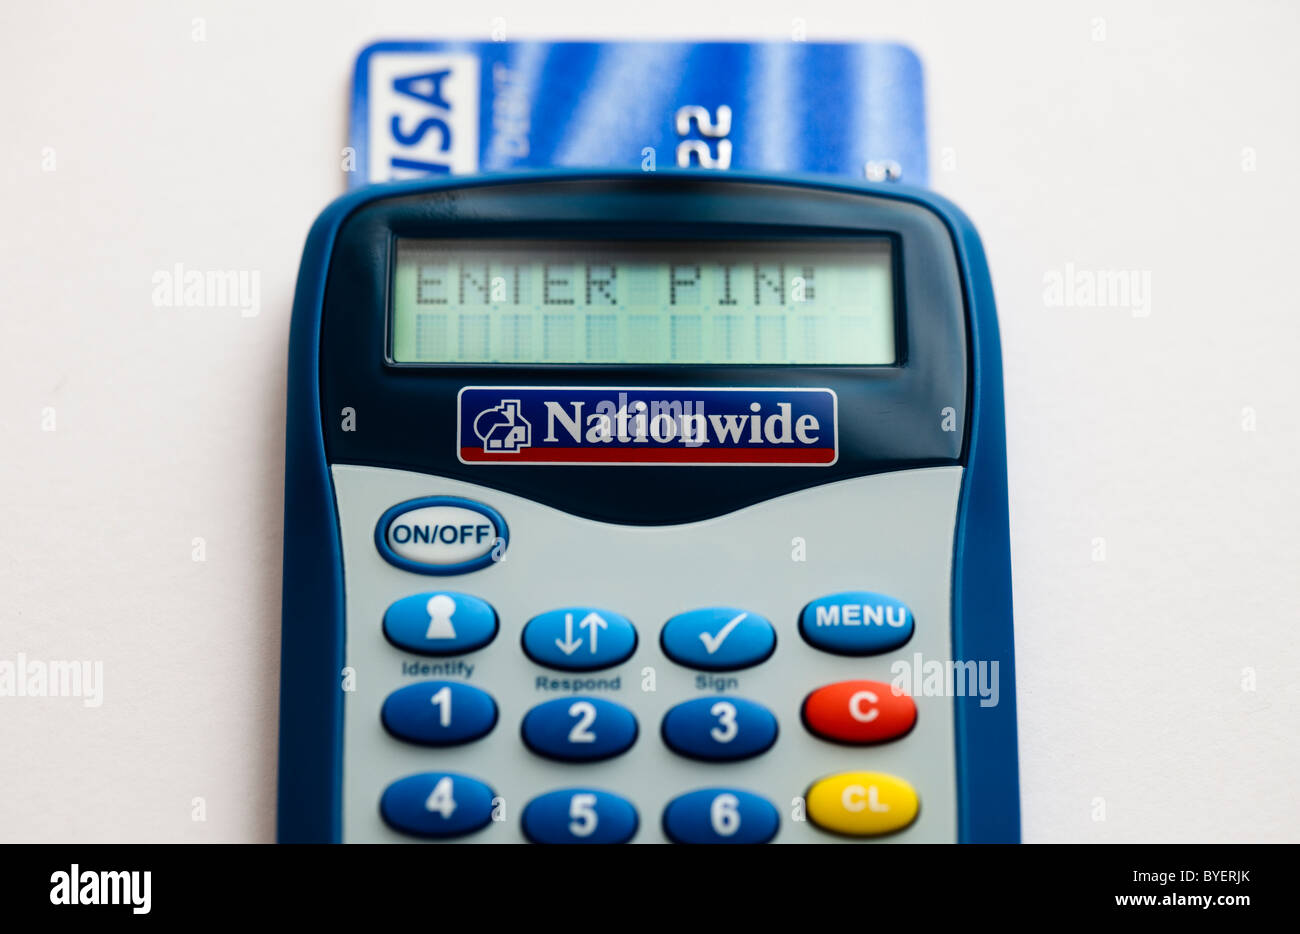 how to get a nationwide card reader